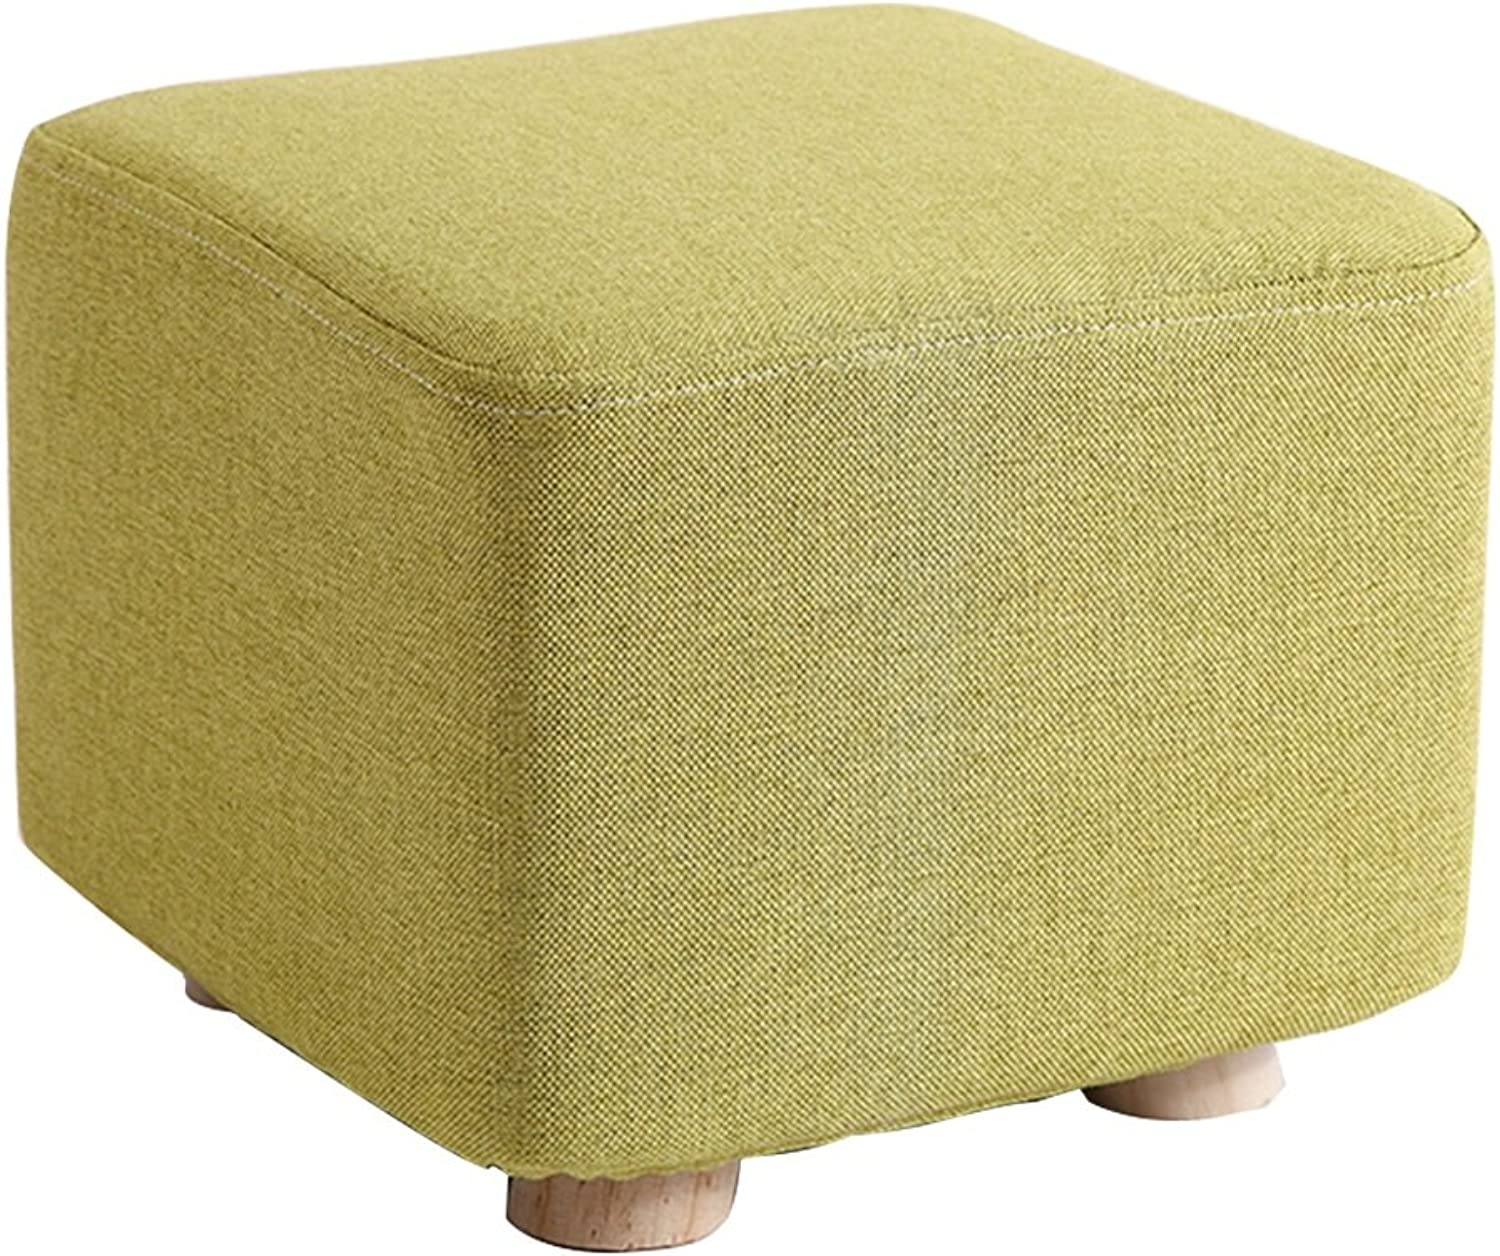 Stools Solid Wood Stool High Resilience Sponge You Can Open Clean Fashion Ideas 25× 20 cm Footstools (color   Green)